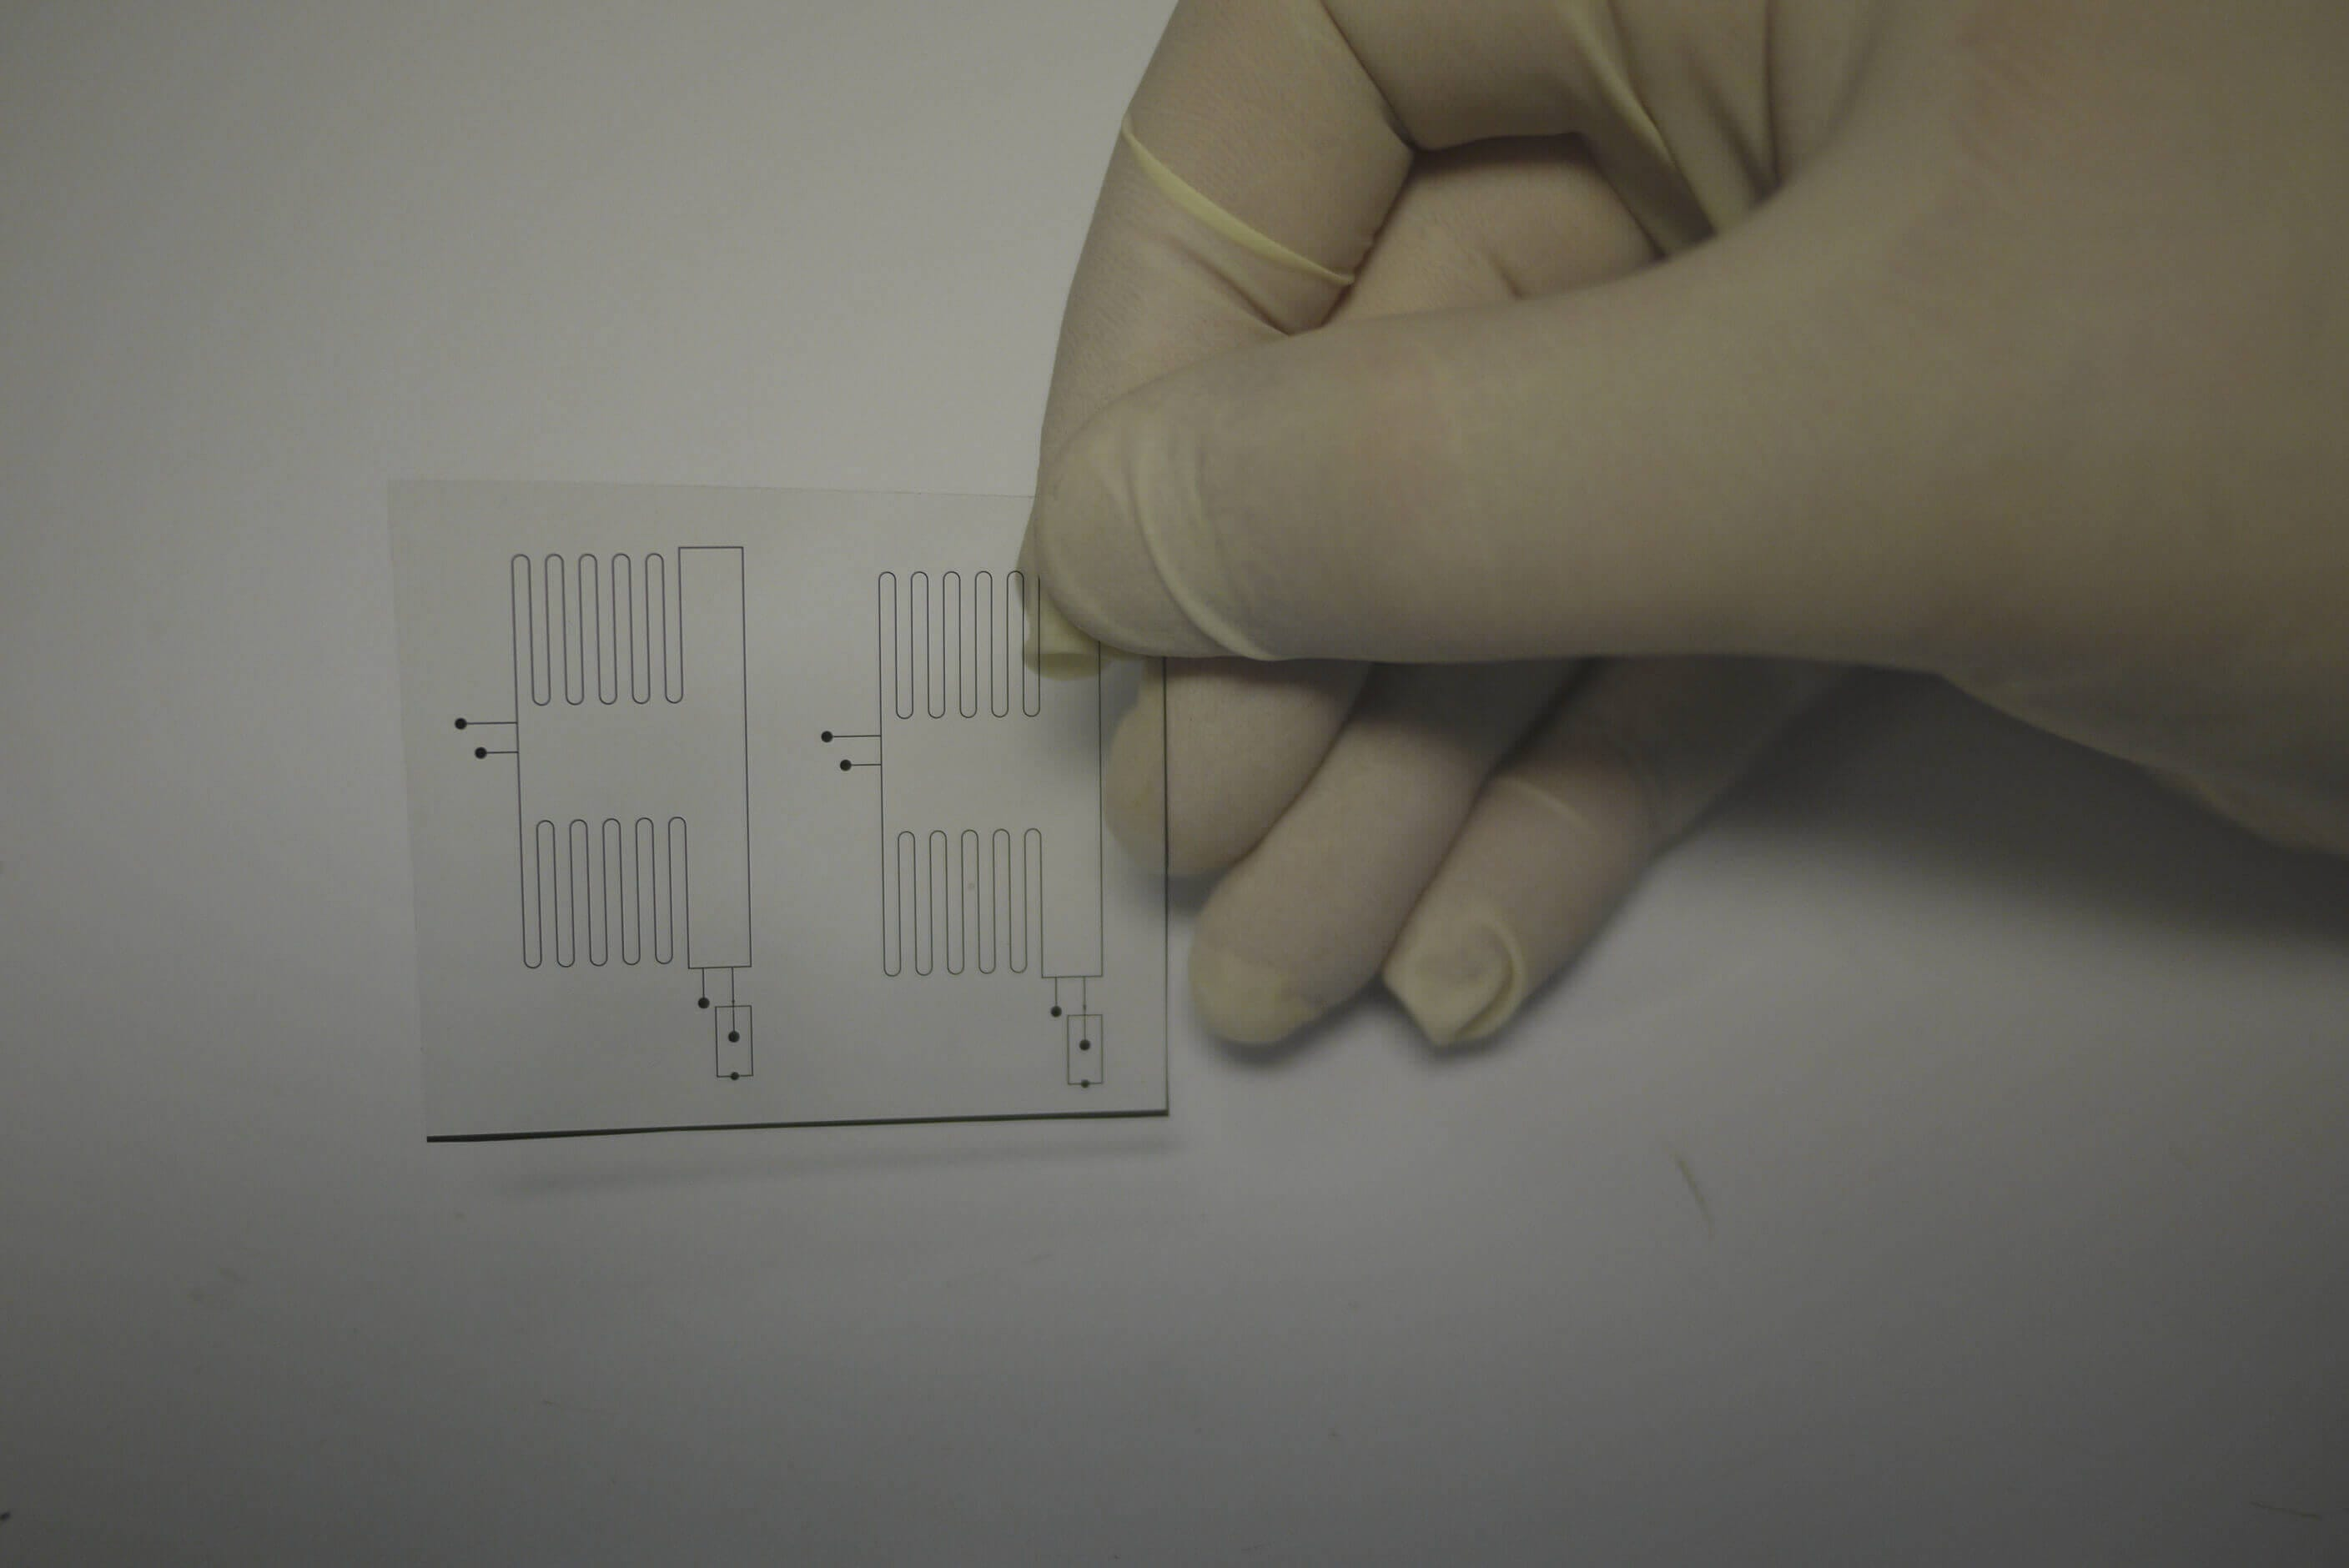 Microfluidic and PDMS soft lithography : Transparency photomask